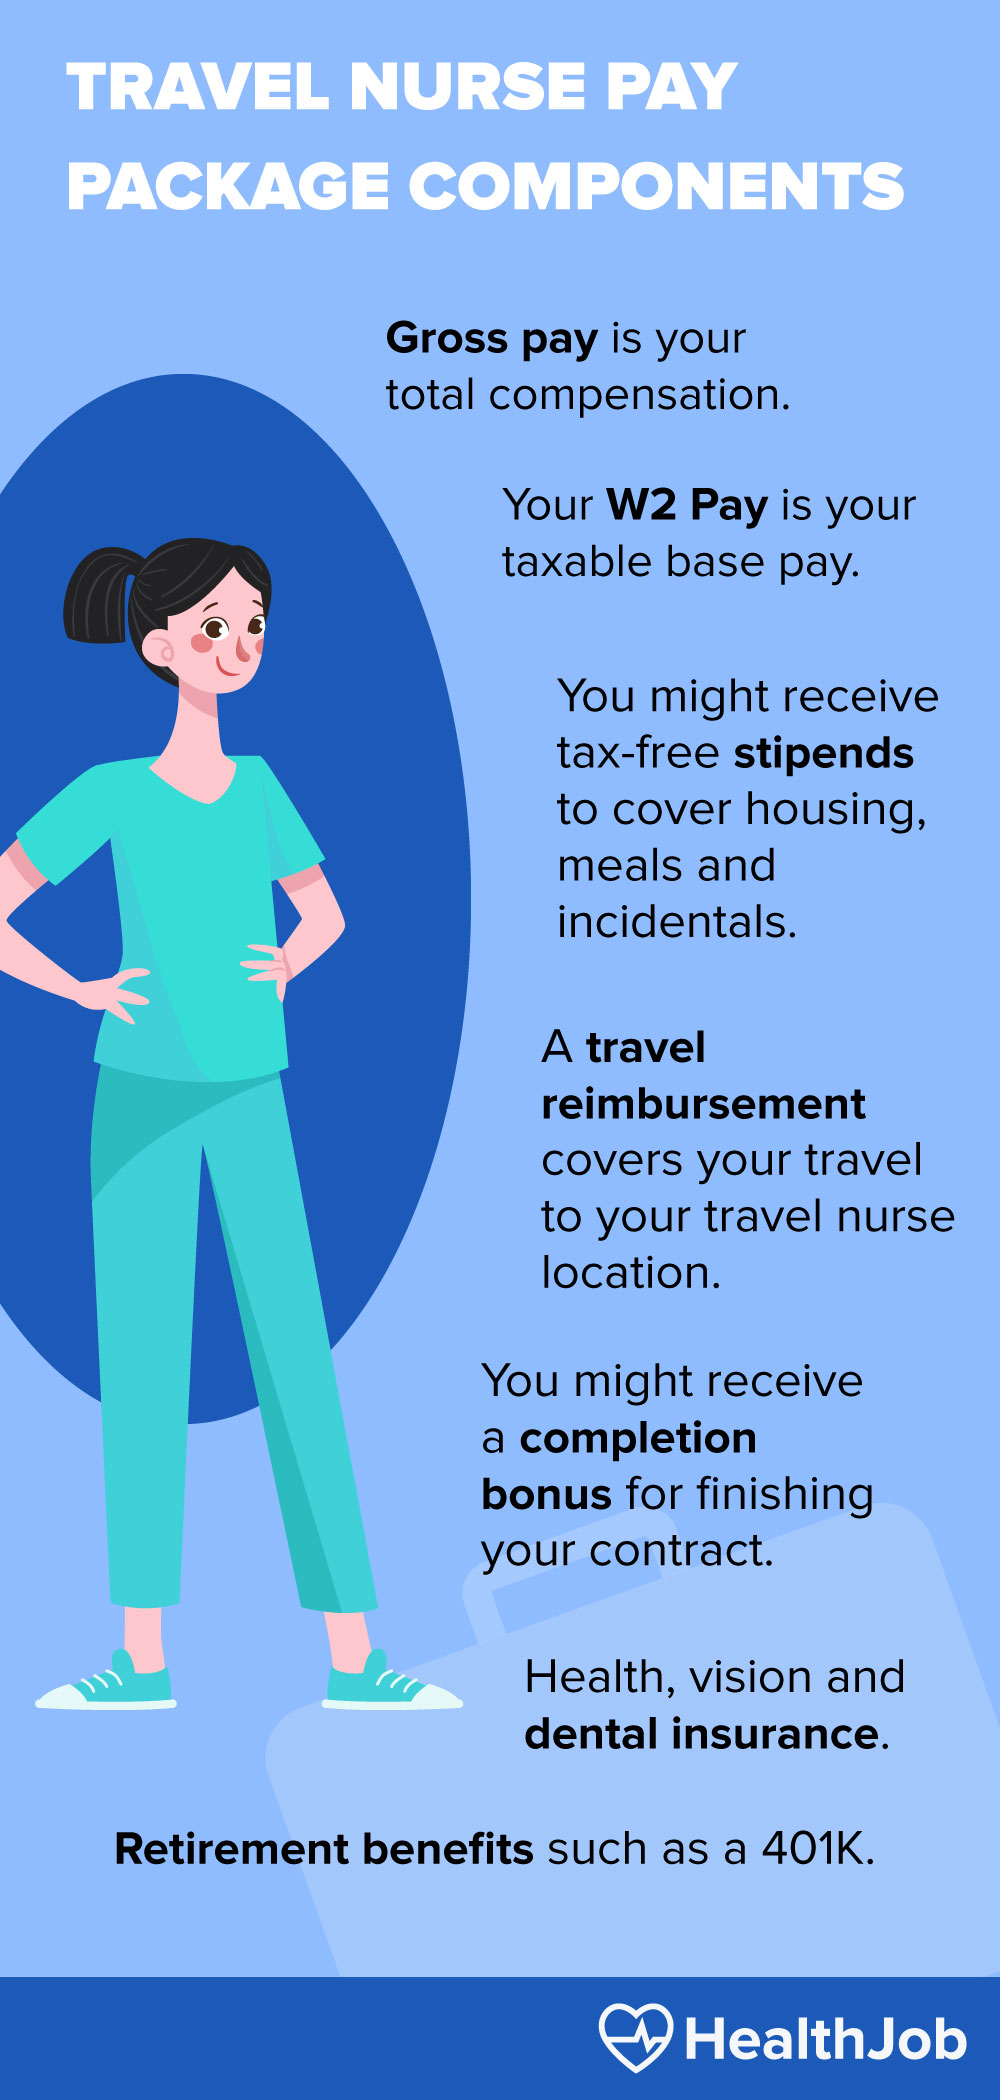 Travel Nurse Pay Package Components